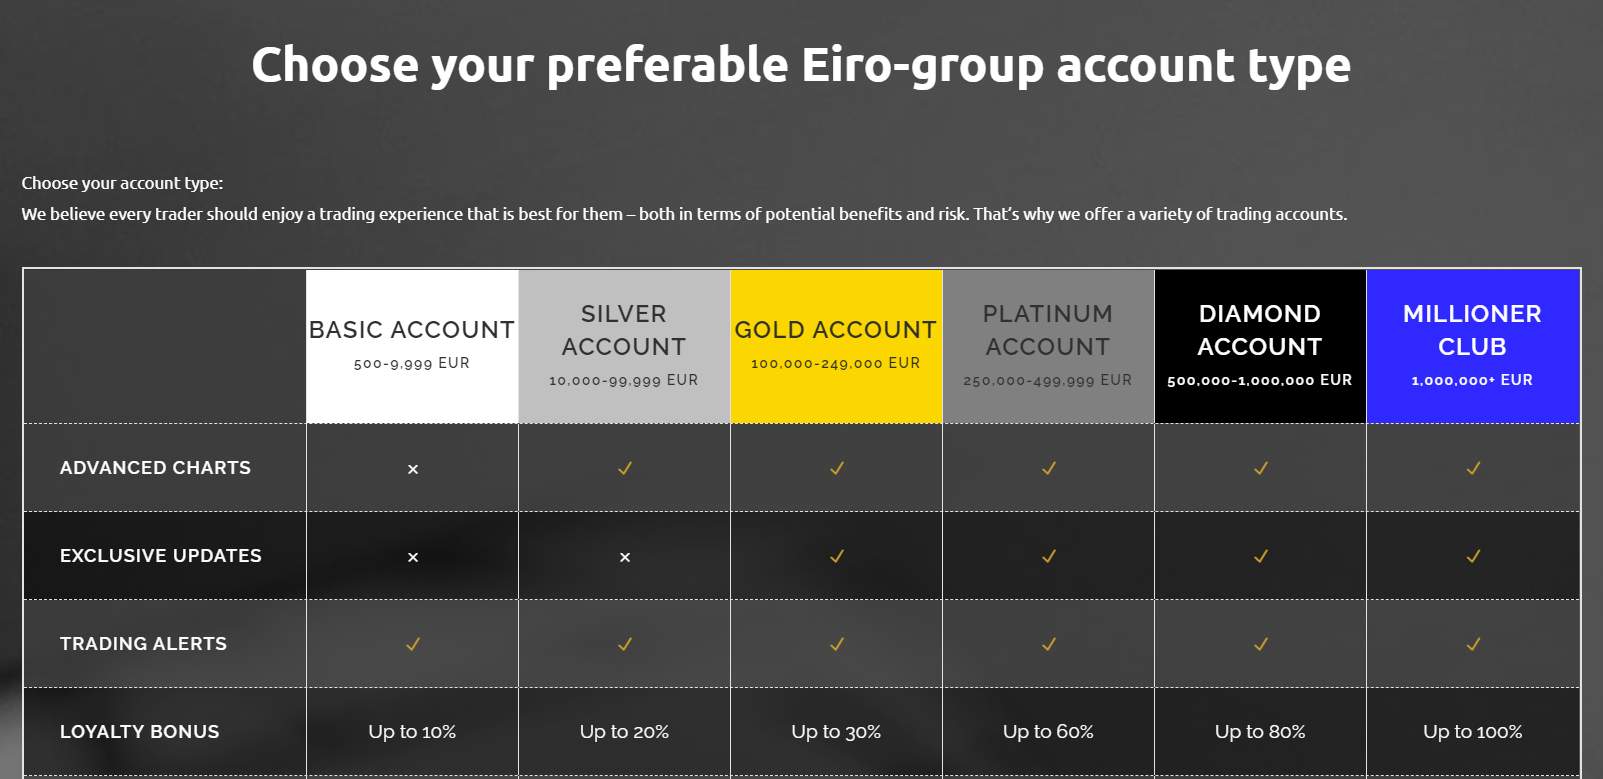 Eiro Group accounts